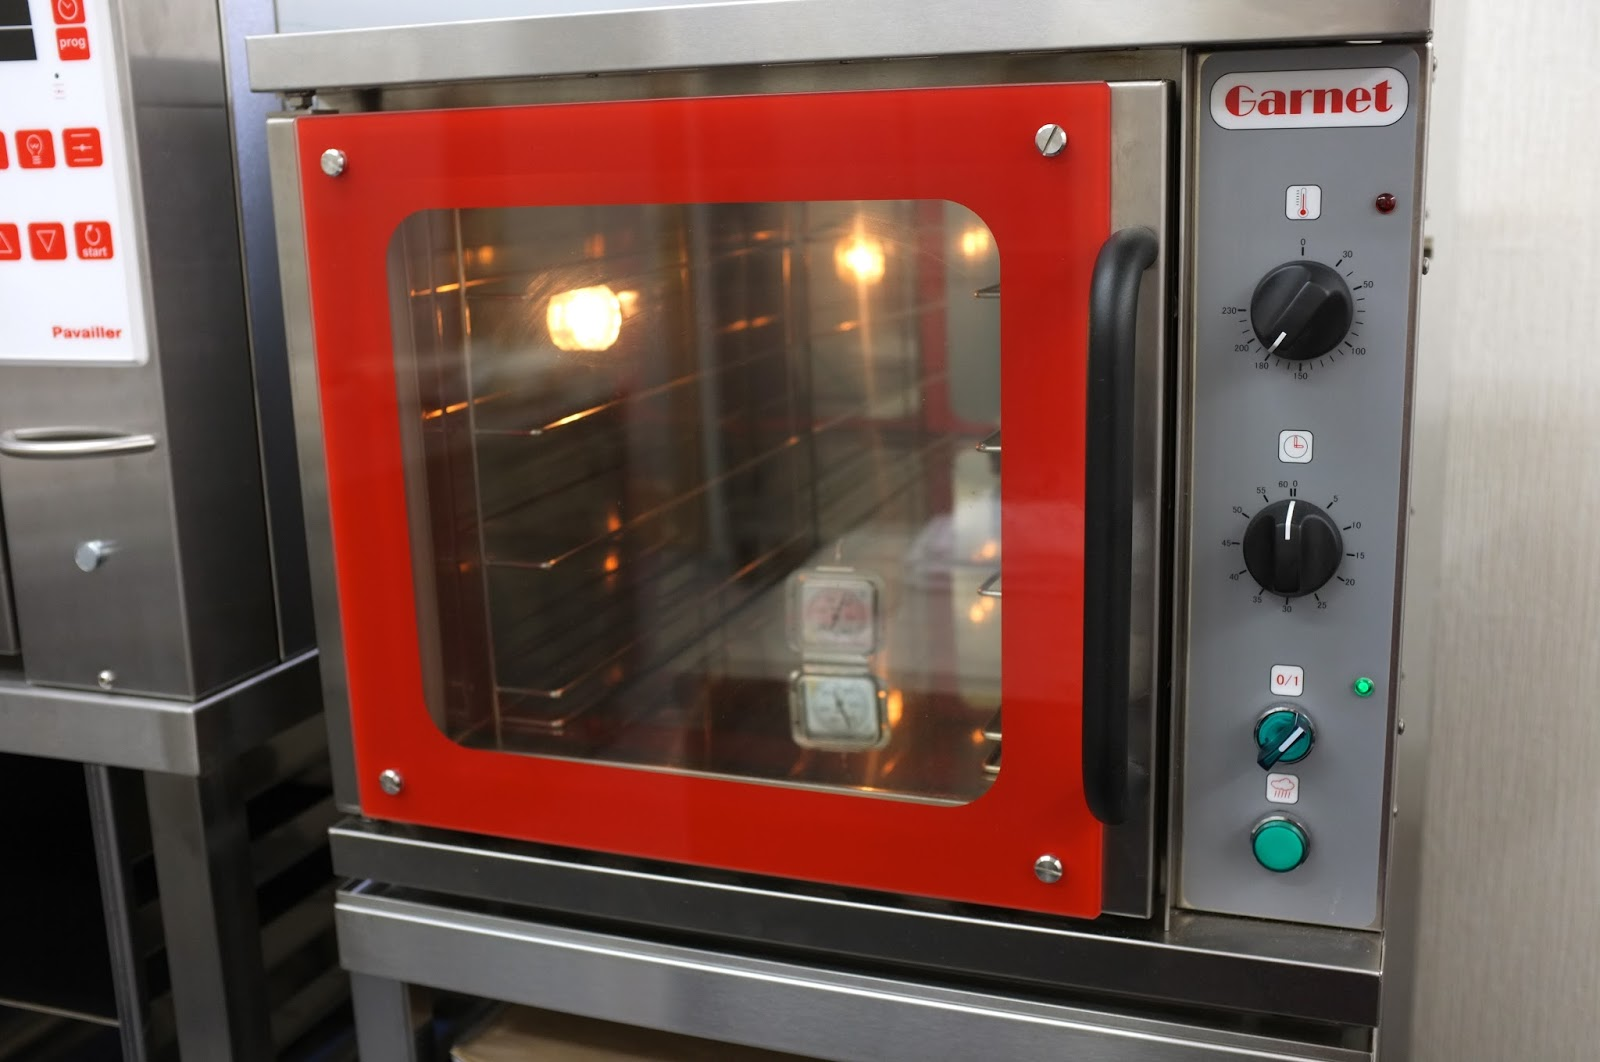 Test Baking Professional Garnet Oven